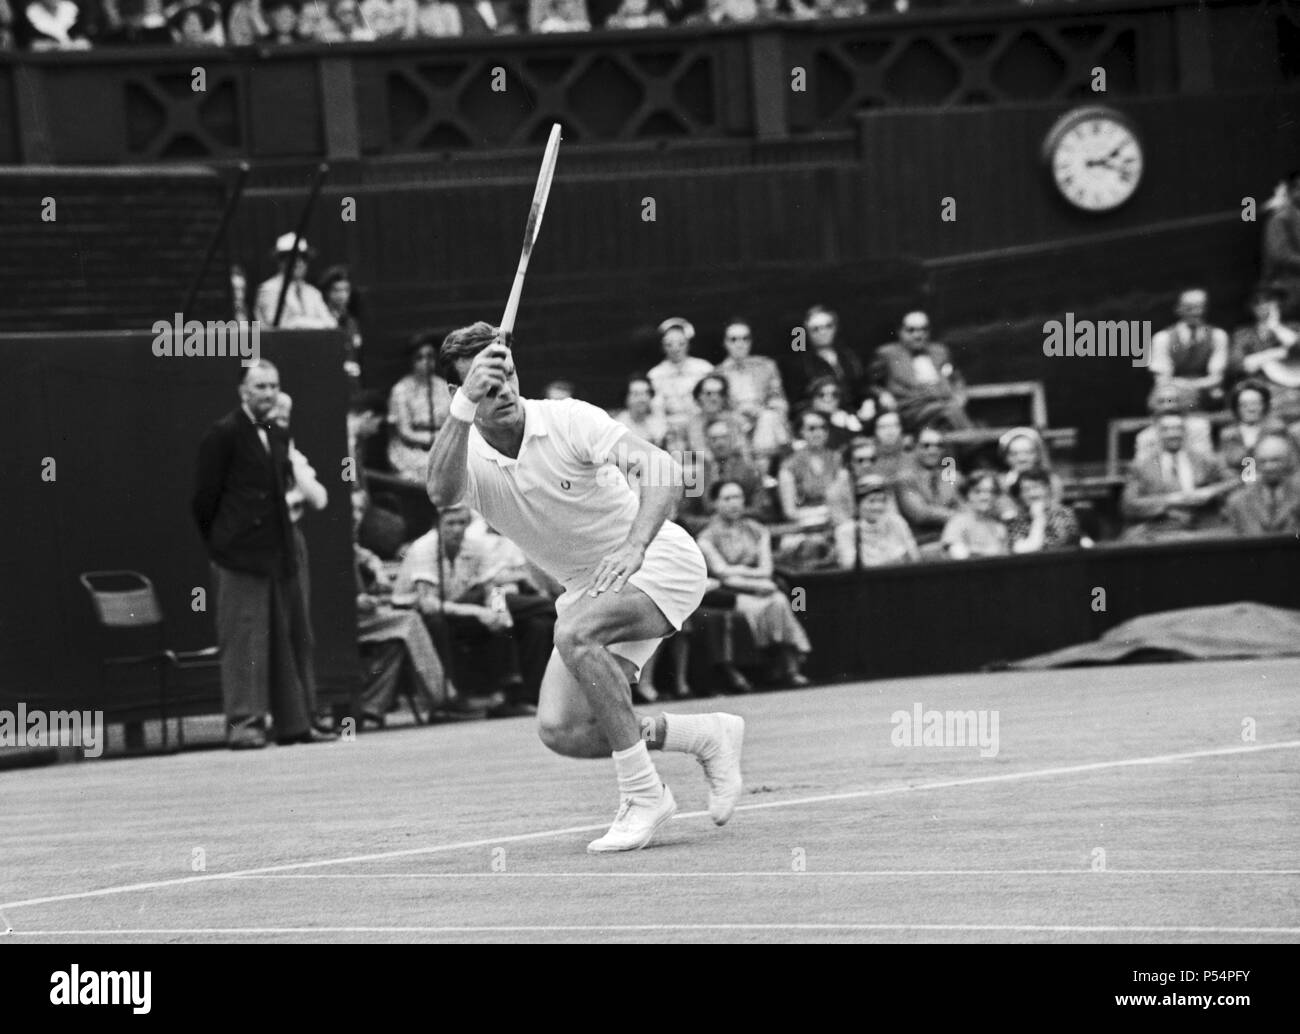 Mens Singles action during the Wimbledon Lawn Tennis Championships. June 1953. - Stock Image